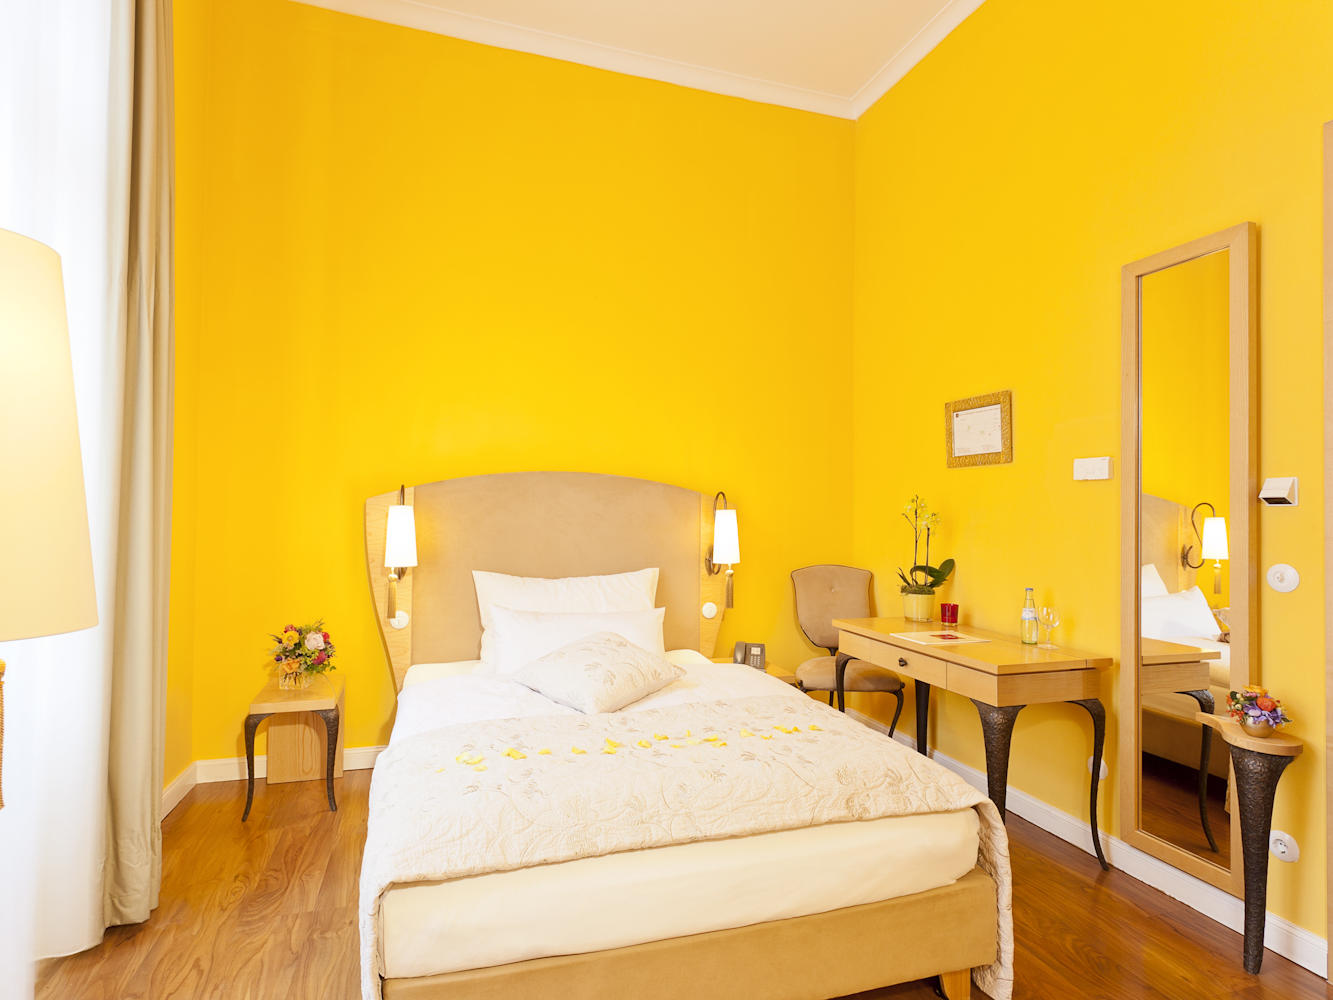 Deluxe Single Room at Classic Hotel Harmonie in Cologne